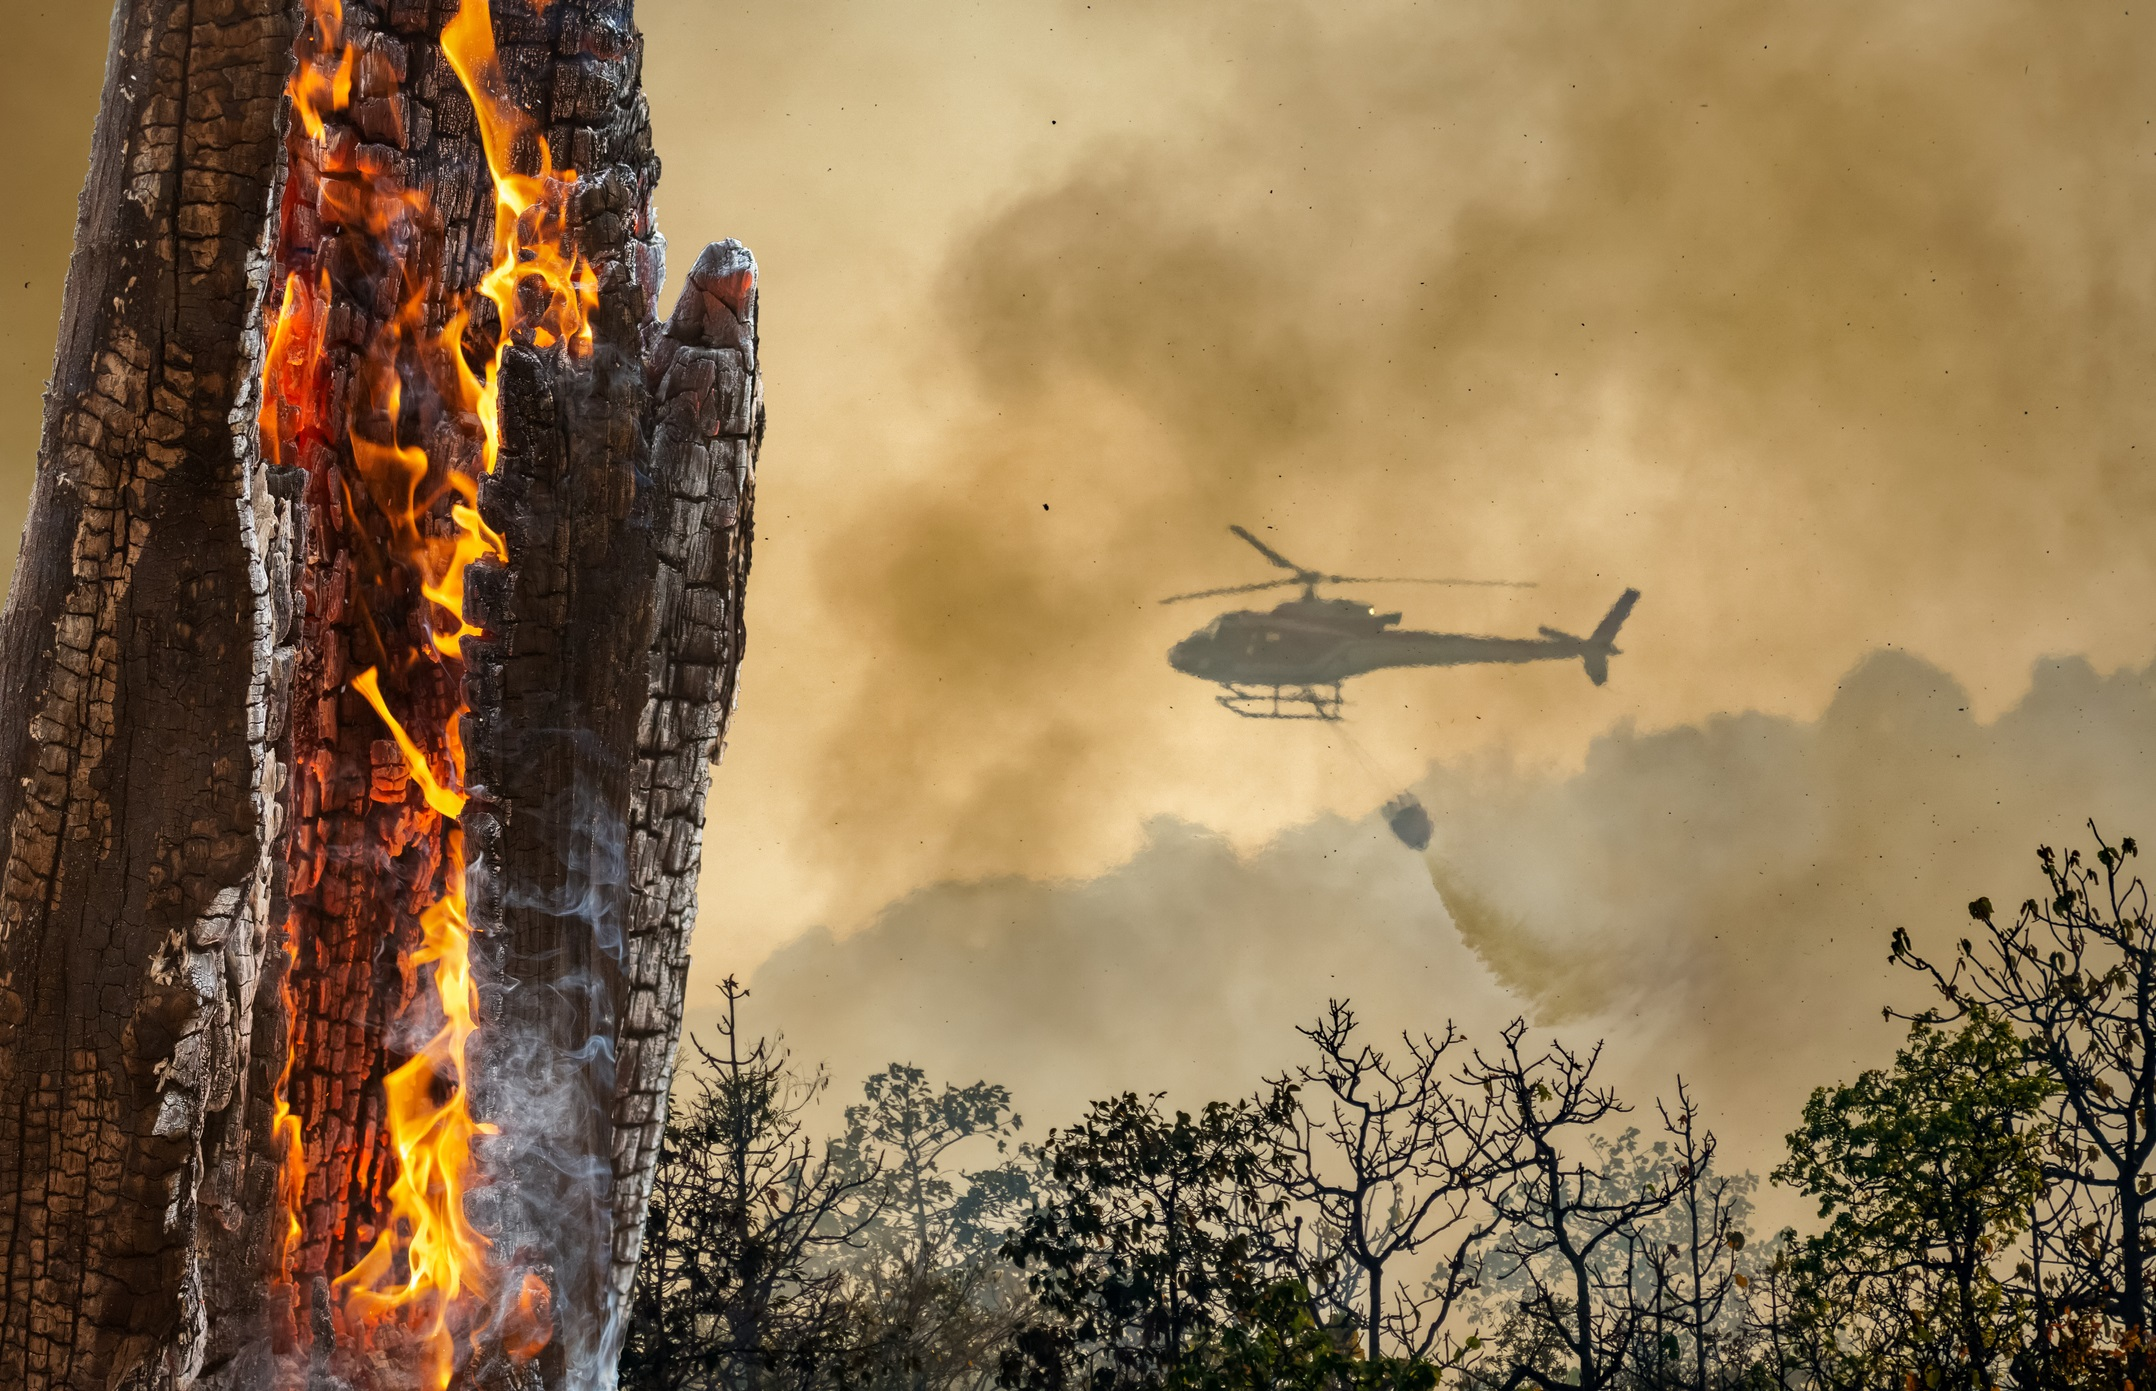 2021 HAI Aerial Firefighting Safety Conference Only a Month Away